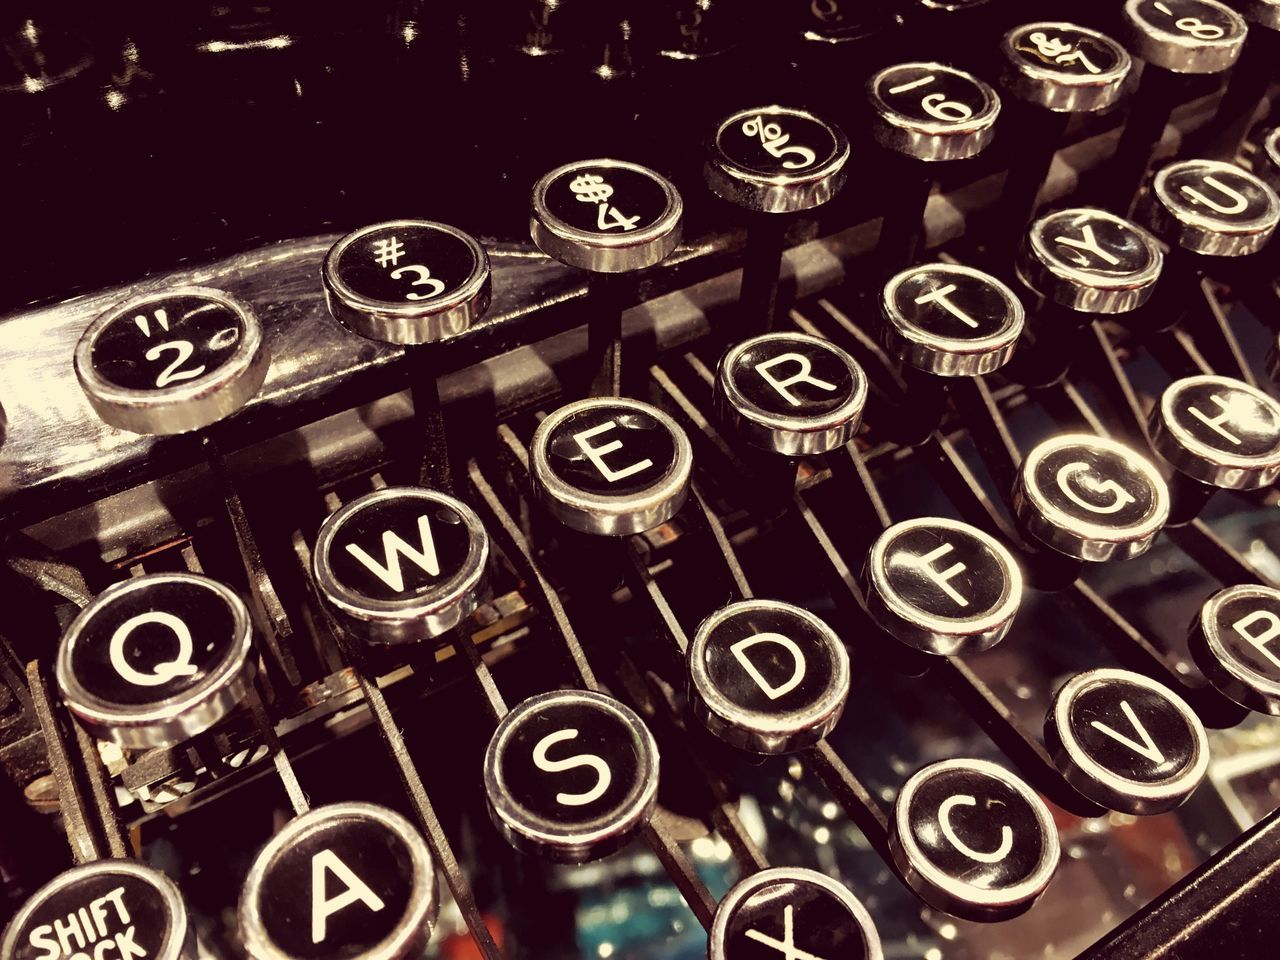 Q-W-E-R-T-Y IPhone Photography IPhone SE IPhoneography IPhone Iphonephotography Typewriter Qwerty Qwerty Keyboard Keyboard Old Vintage Retro EyeEm Gallery Capital Letter Black